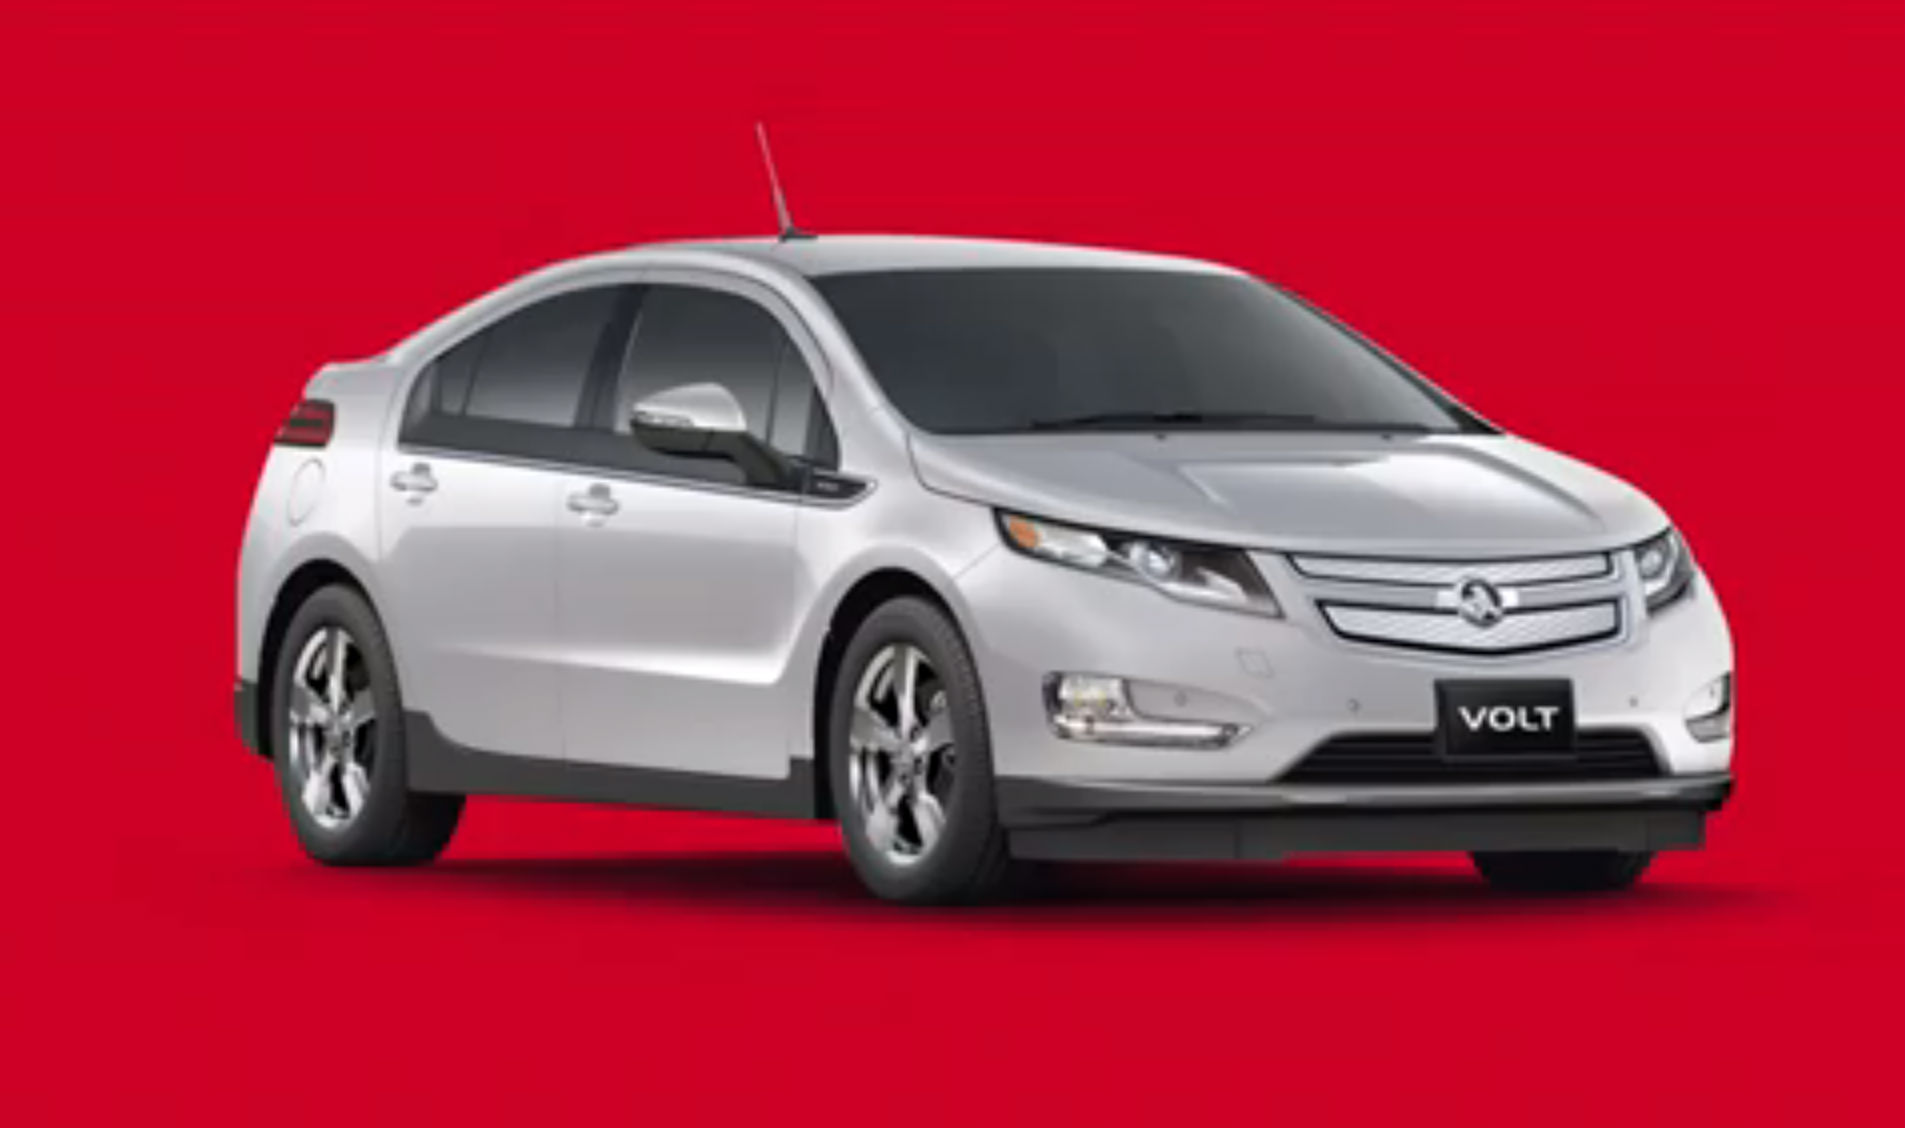 if You Owned a Holden Volt